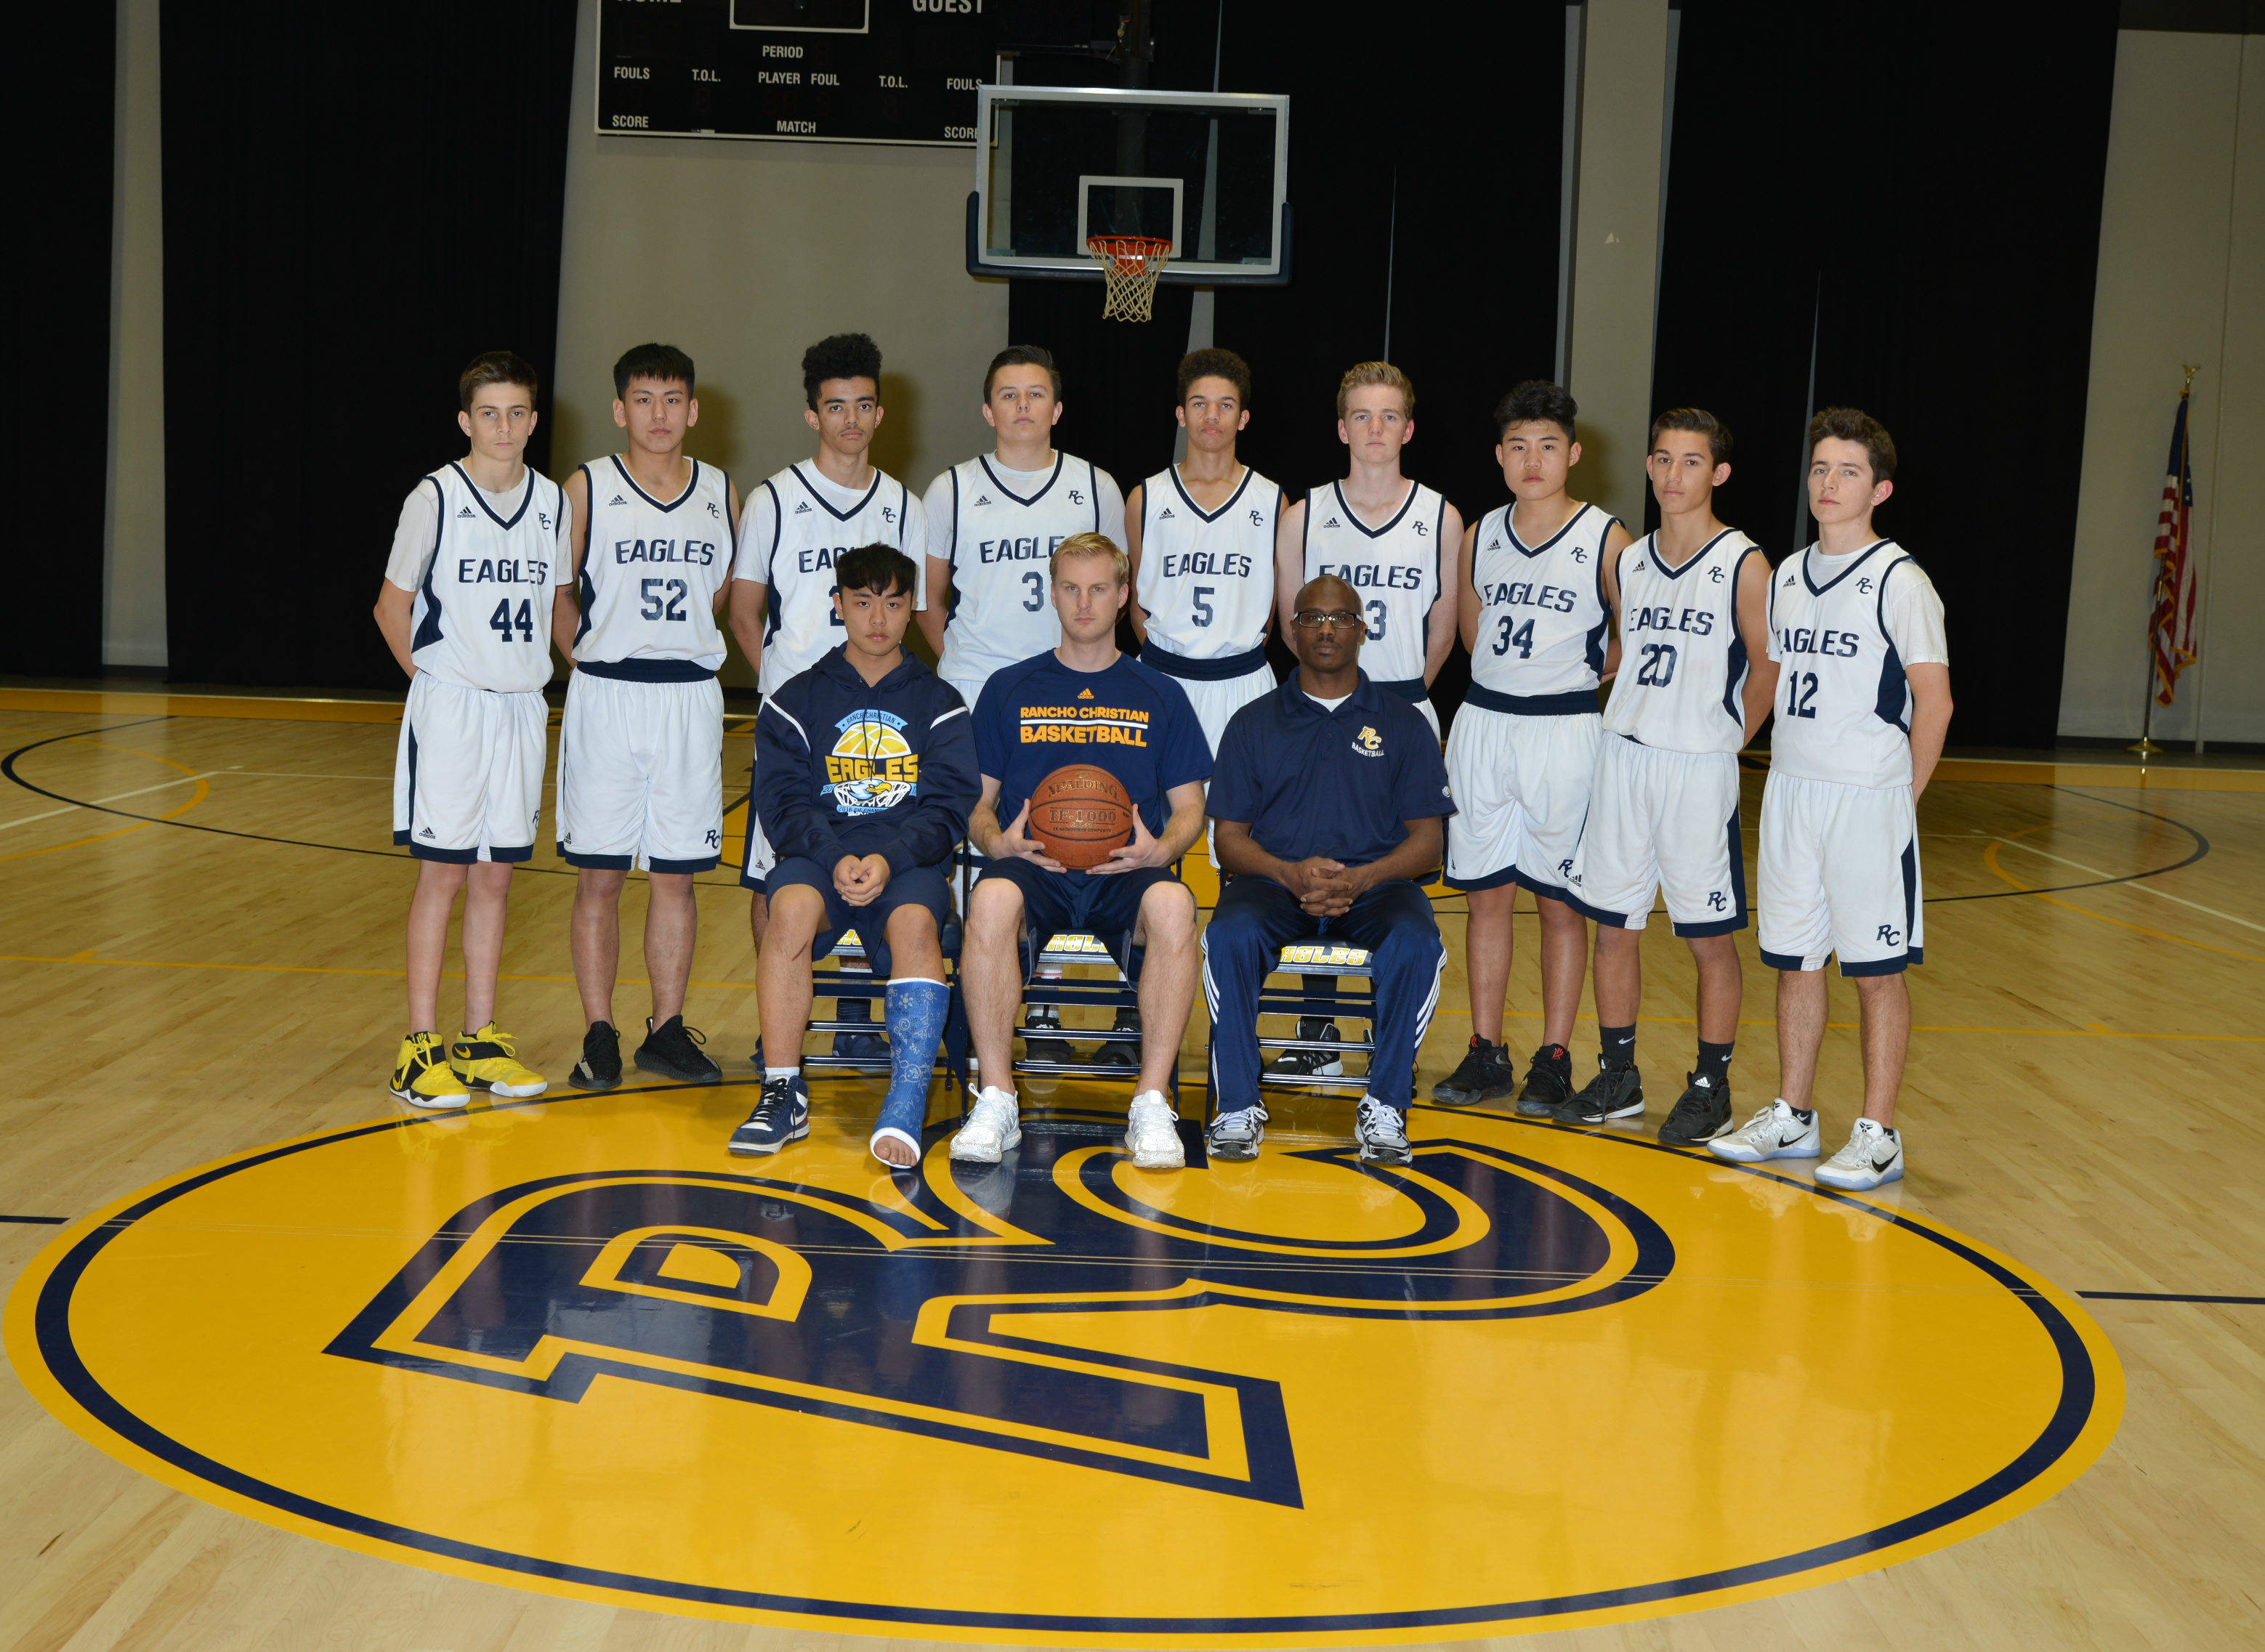 Rchs jv boys basketball 2016 17